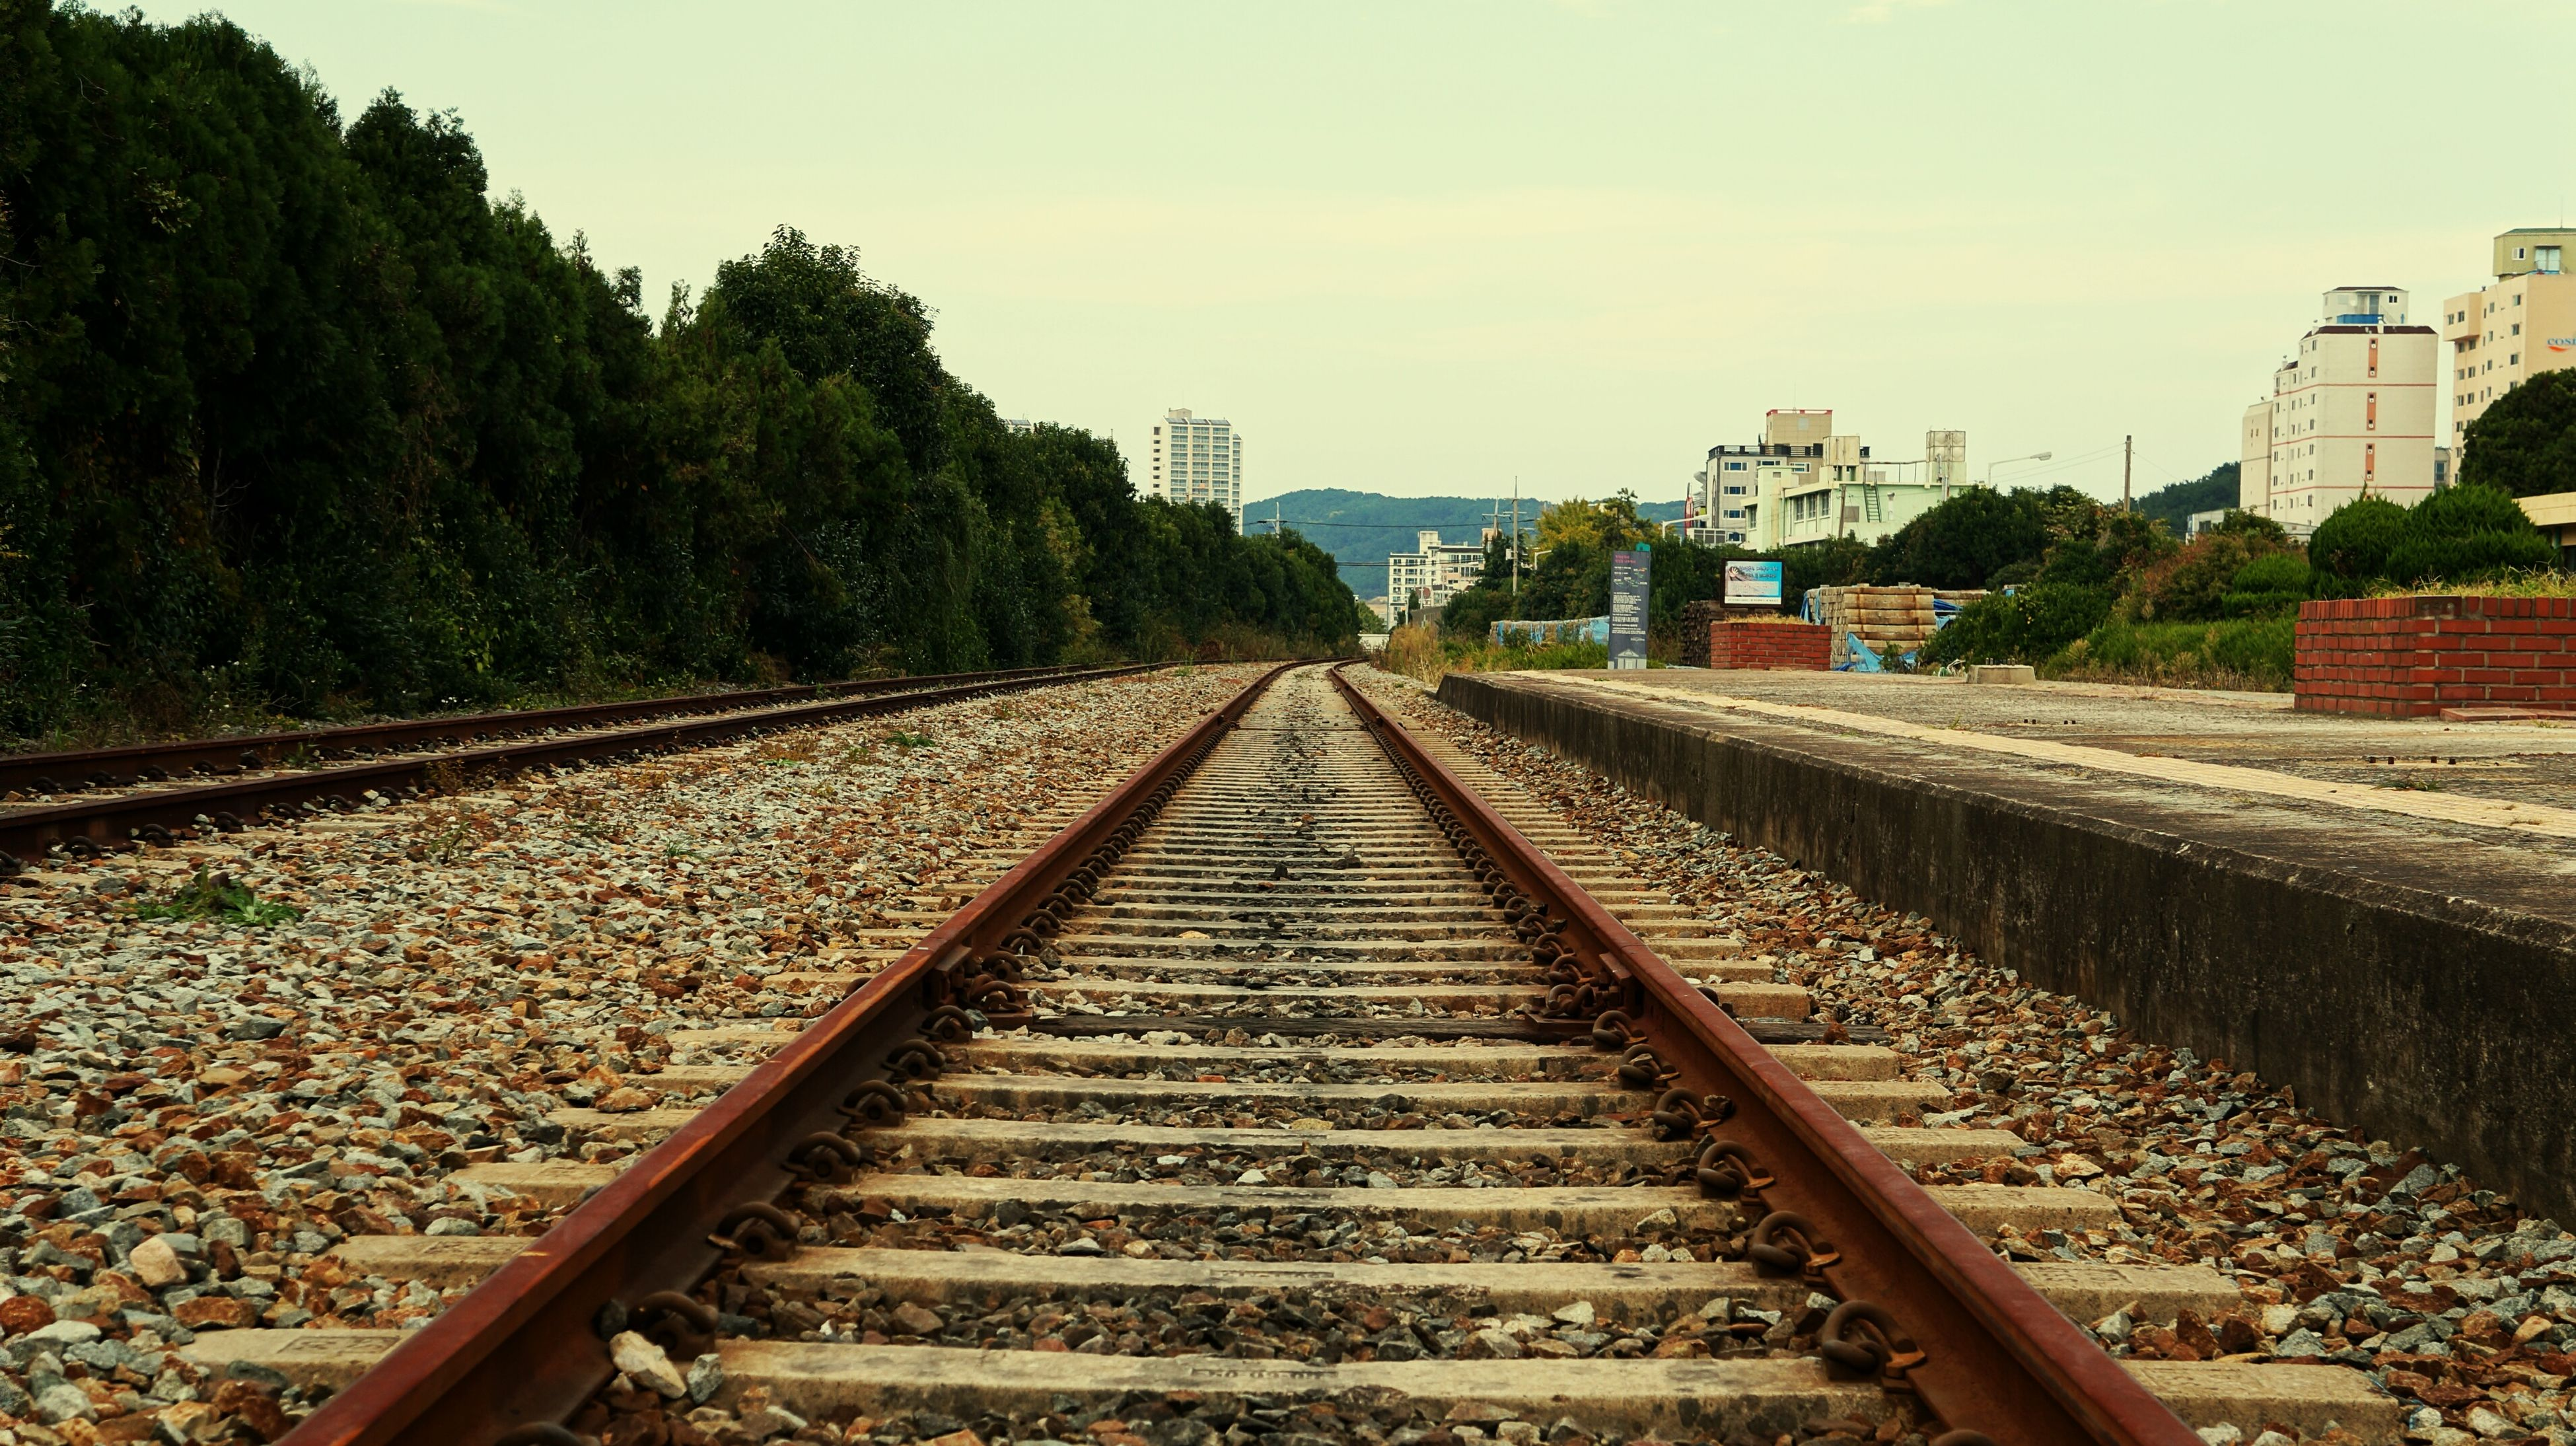 railroad track, rail transportation, the way forward, diminishing perspective, transportation, vanishing point, tree, sky, built structure, railway track, architecture, public transportation, day, straight, outdoors, metal, building exterior, connection, clear sky, no people